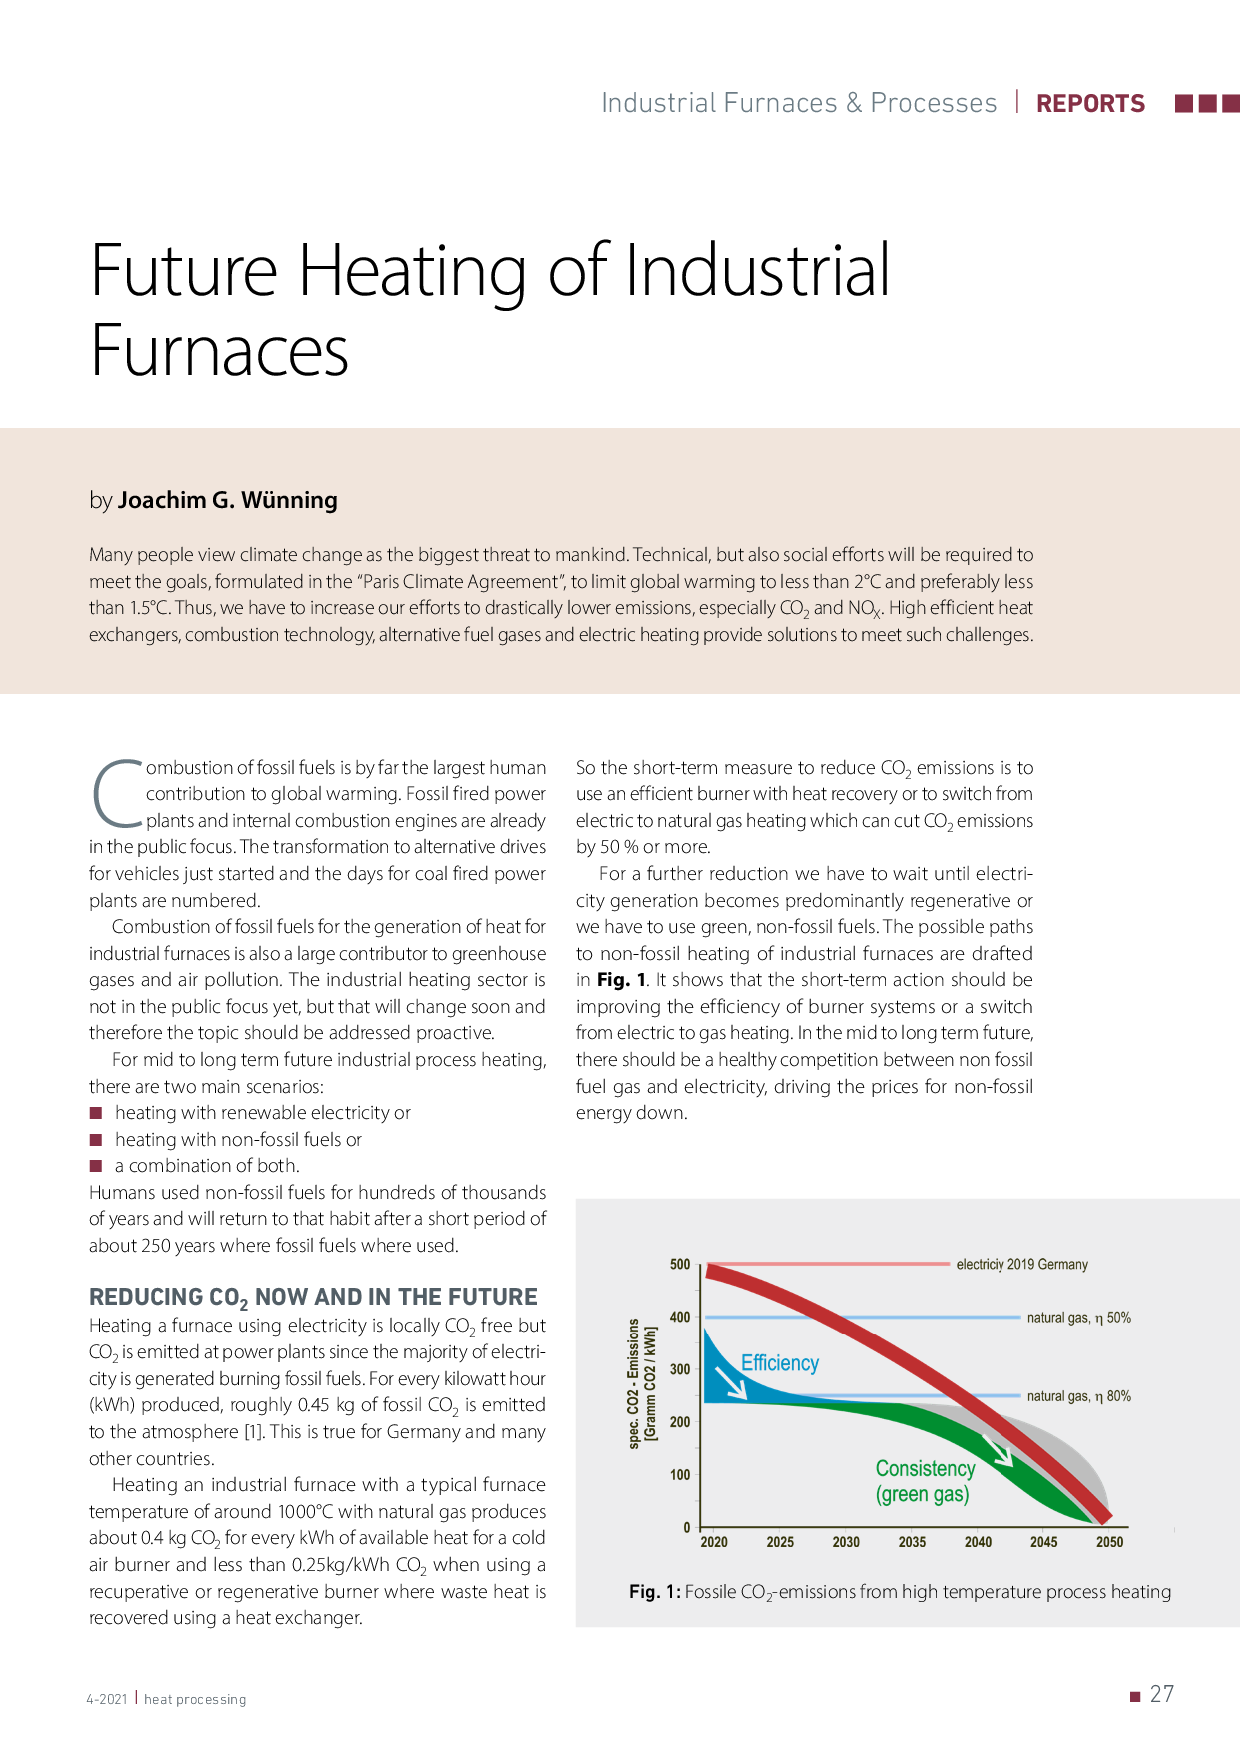 Future heating of industrial furnaces